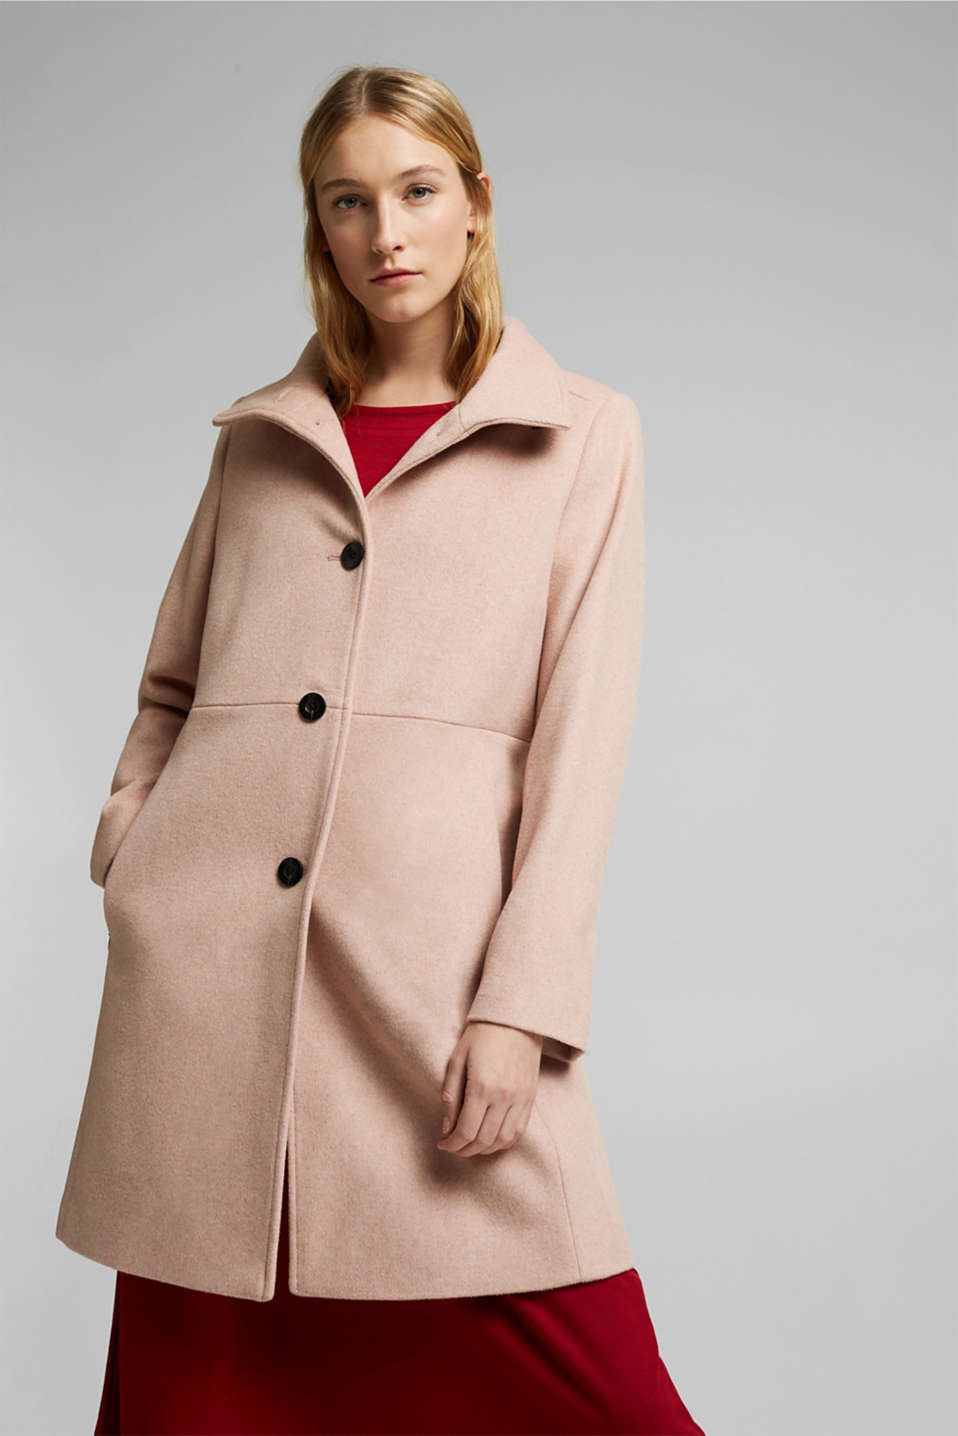 Esprit - Made of blended wool: Coat with a stand-up collar